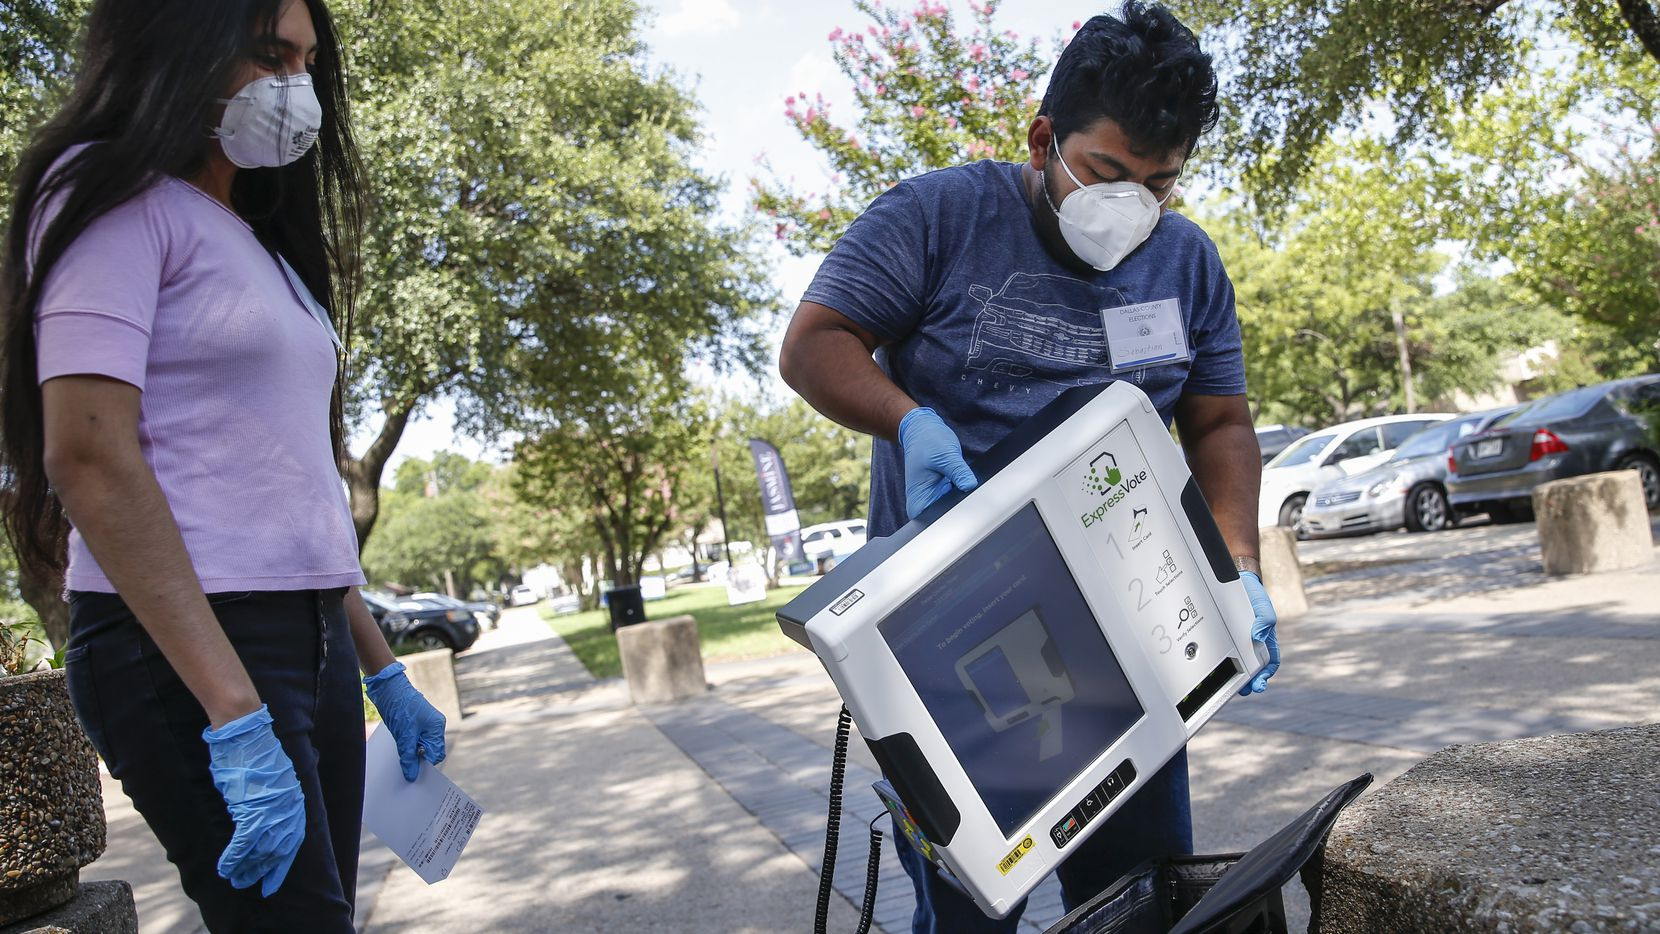 High school poll workers Sebastian Roman (right), 18, and Diana Paulin, 18, put away an electronic voting machine as they work a curbside voting lane during early voting at Beckley Courthouse on Thursday, July 9, 2020 in Dallas. (Ryan Michalesko/The Dallas Morning News)